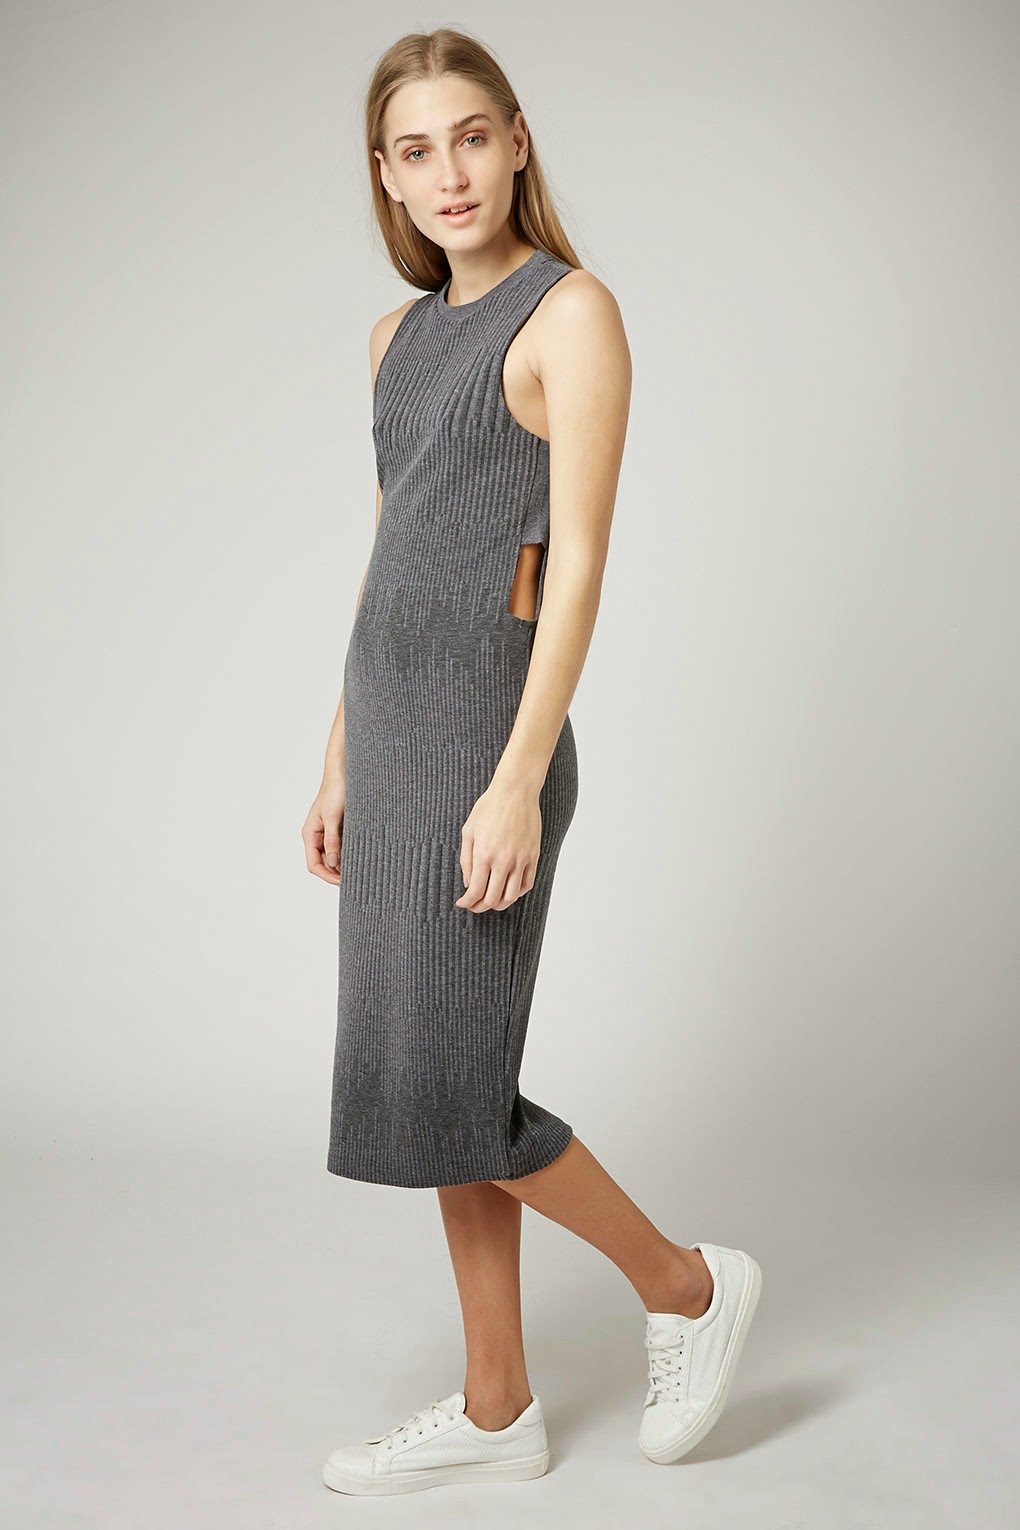 grey ribbed dress topshop